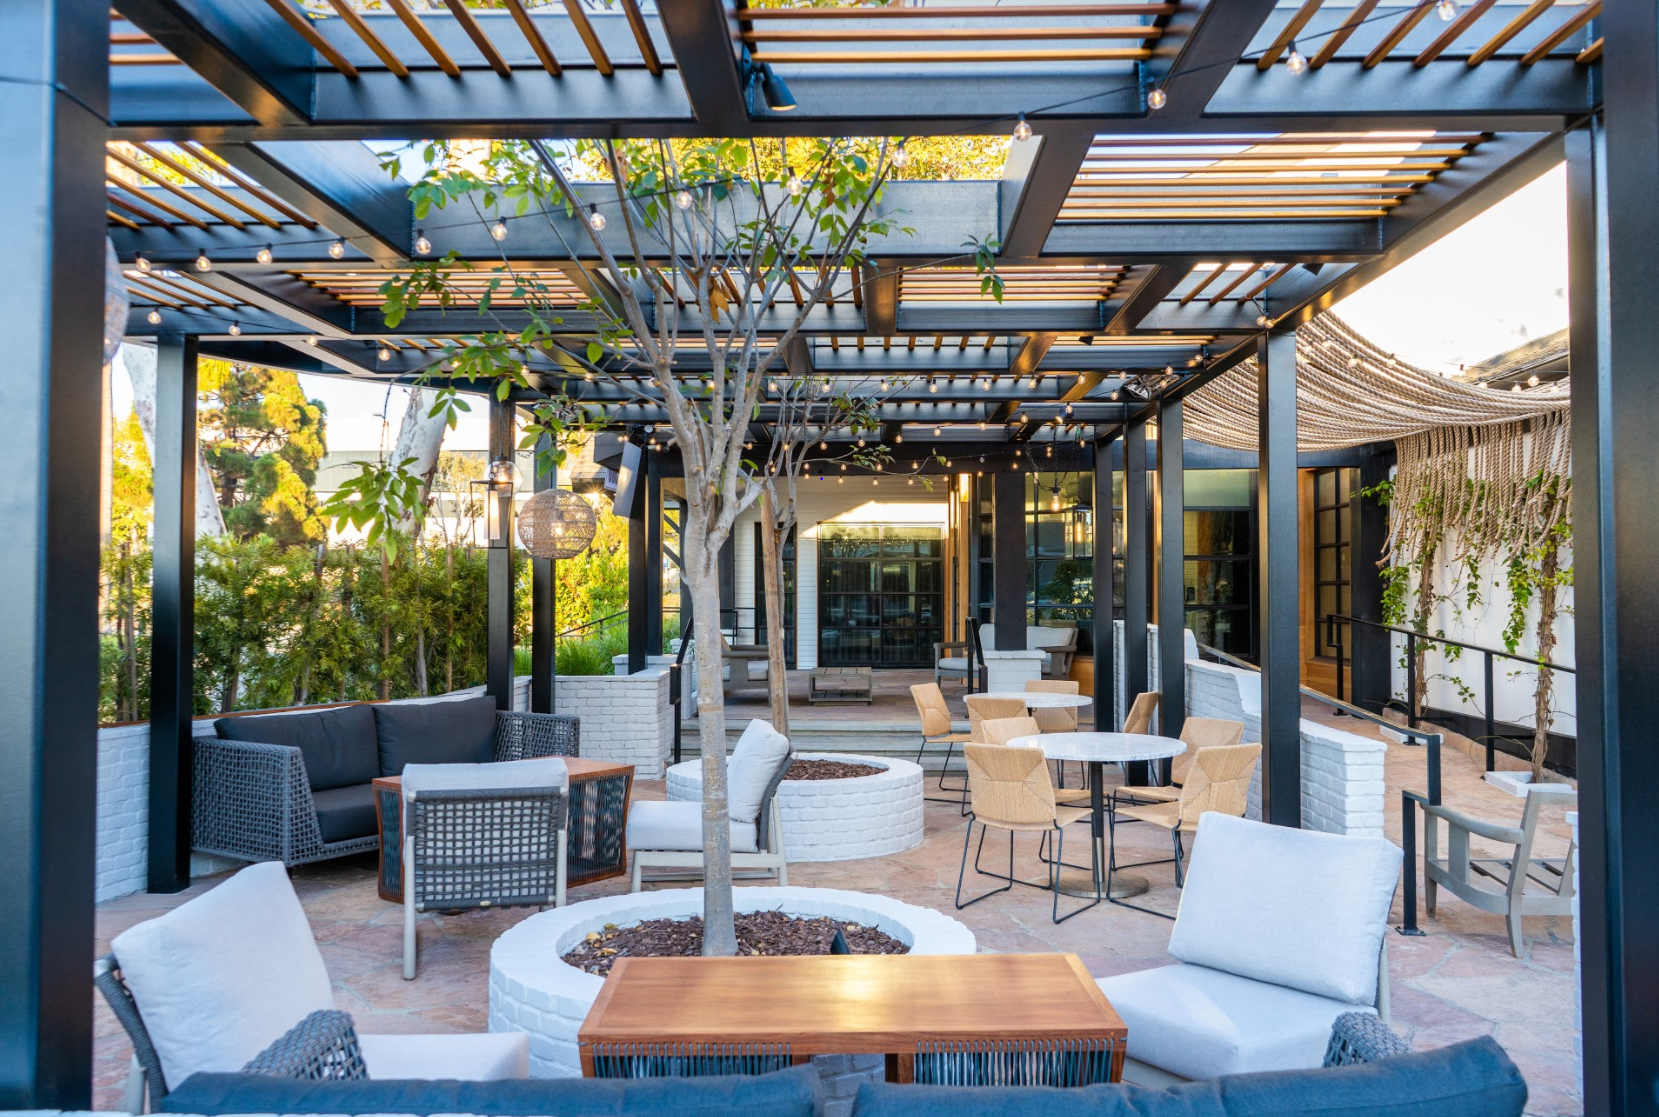 Outdoor patio with white chairs and decorative accents and trellice covering at Jerry's Patio and Bar in Marina del Rey.